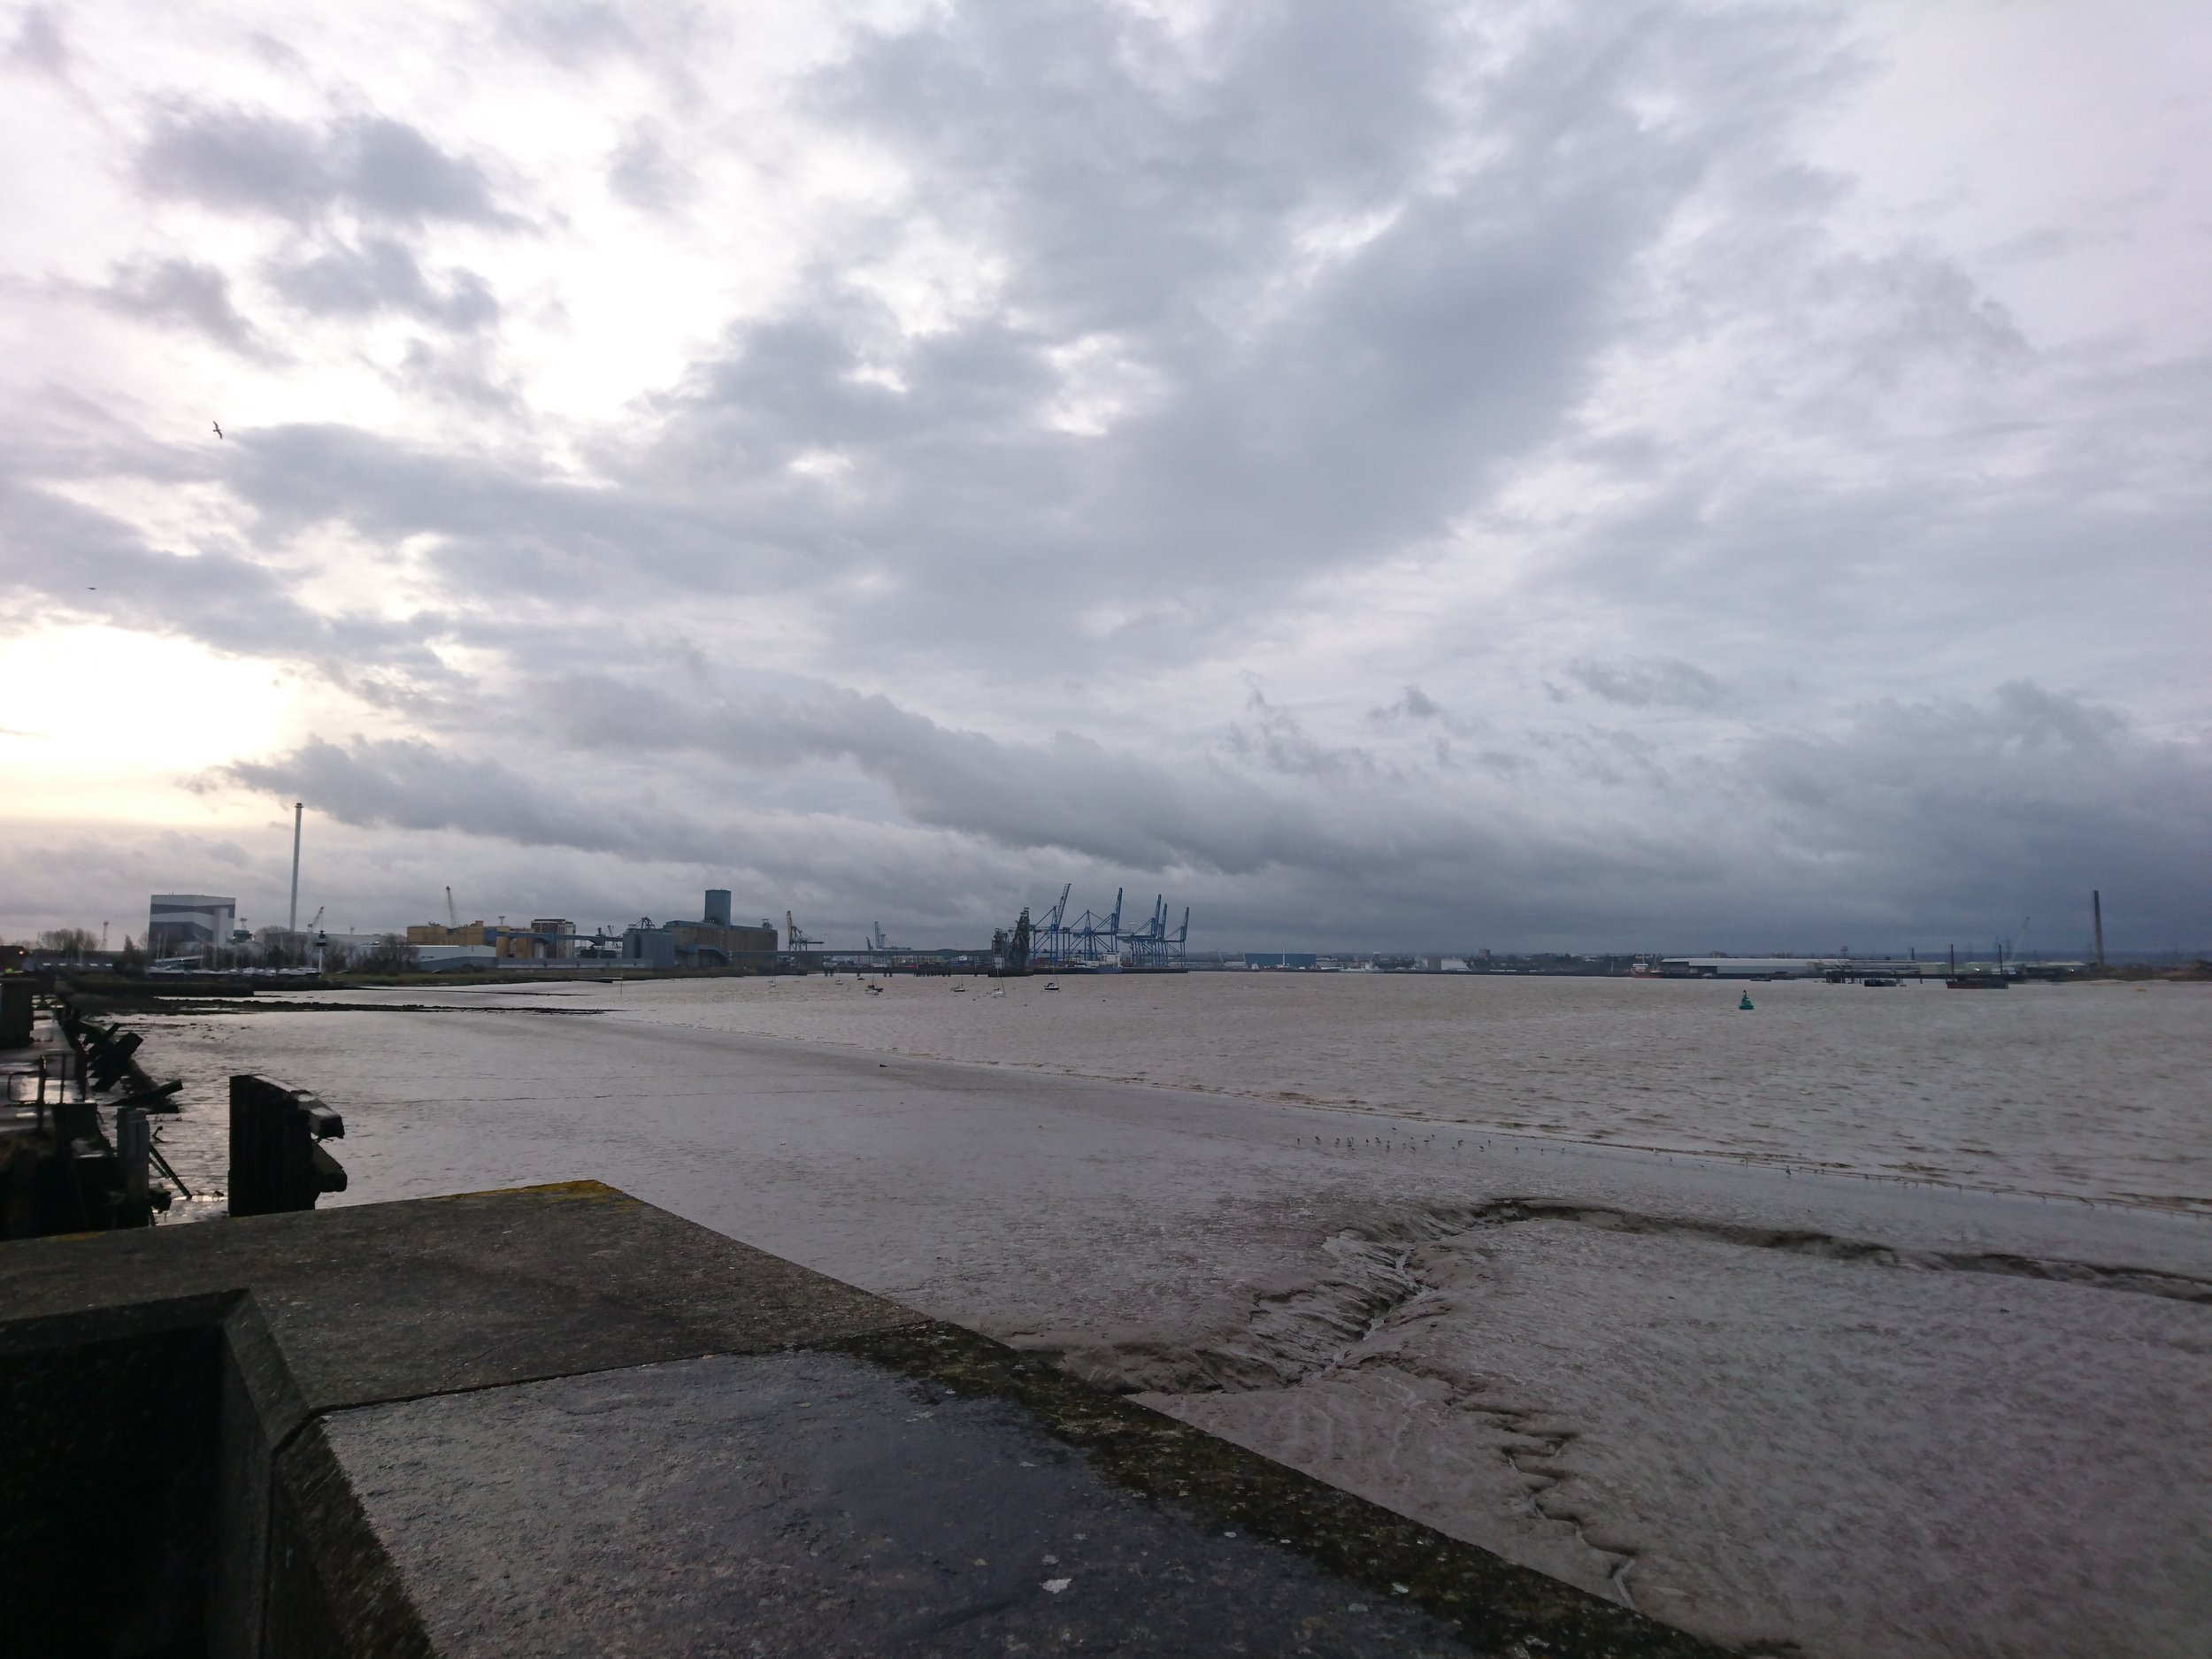 Looking back to Tilbury Docks